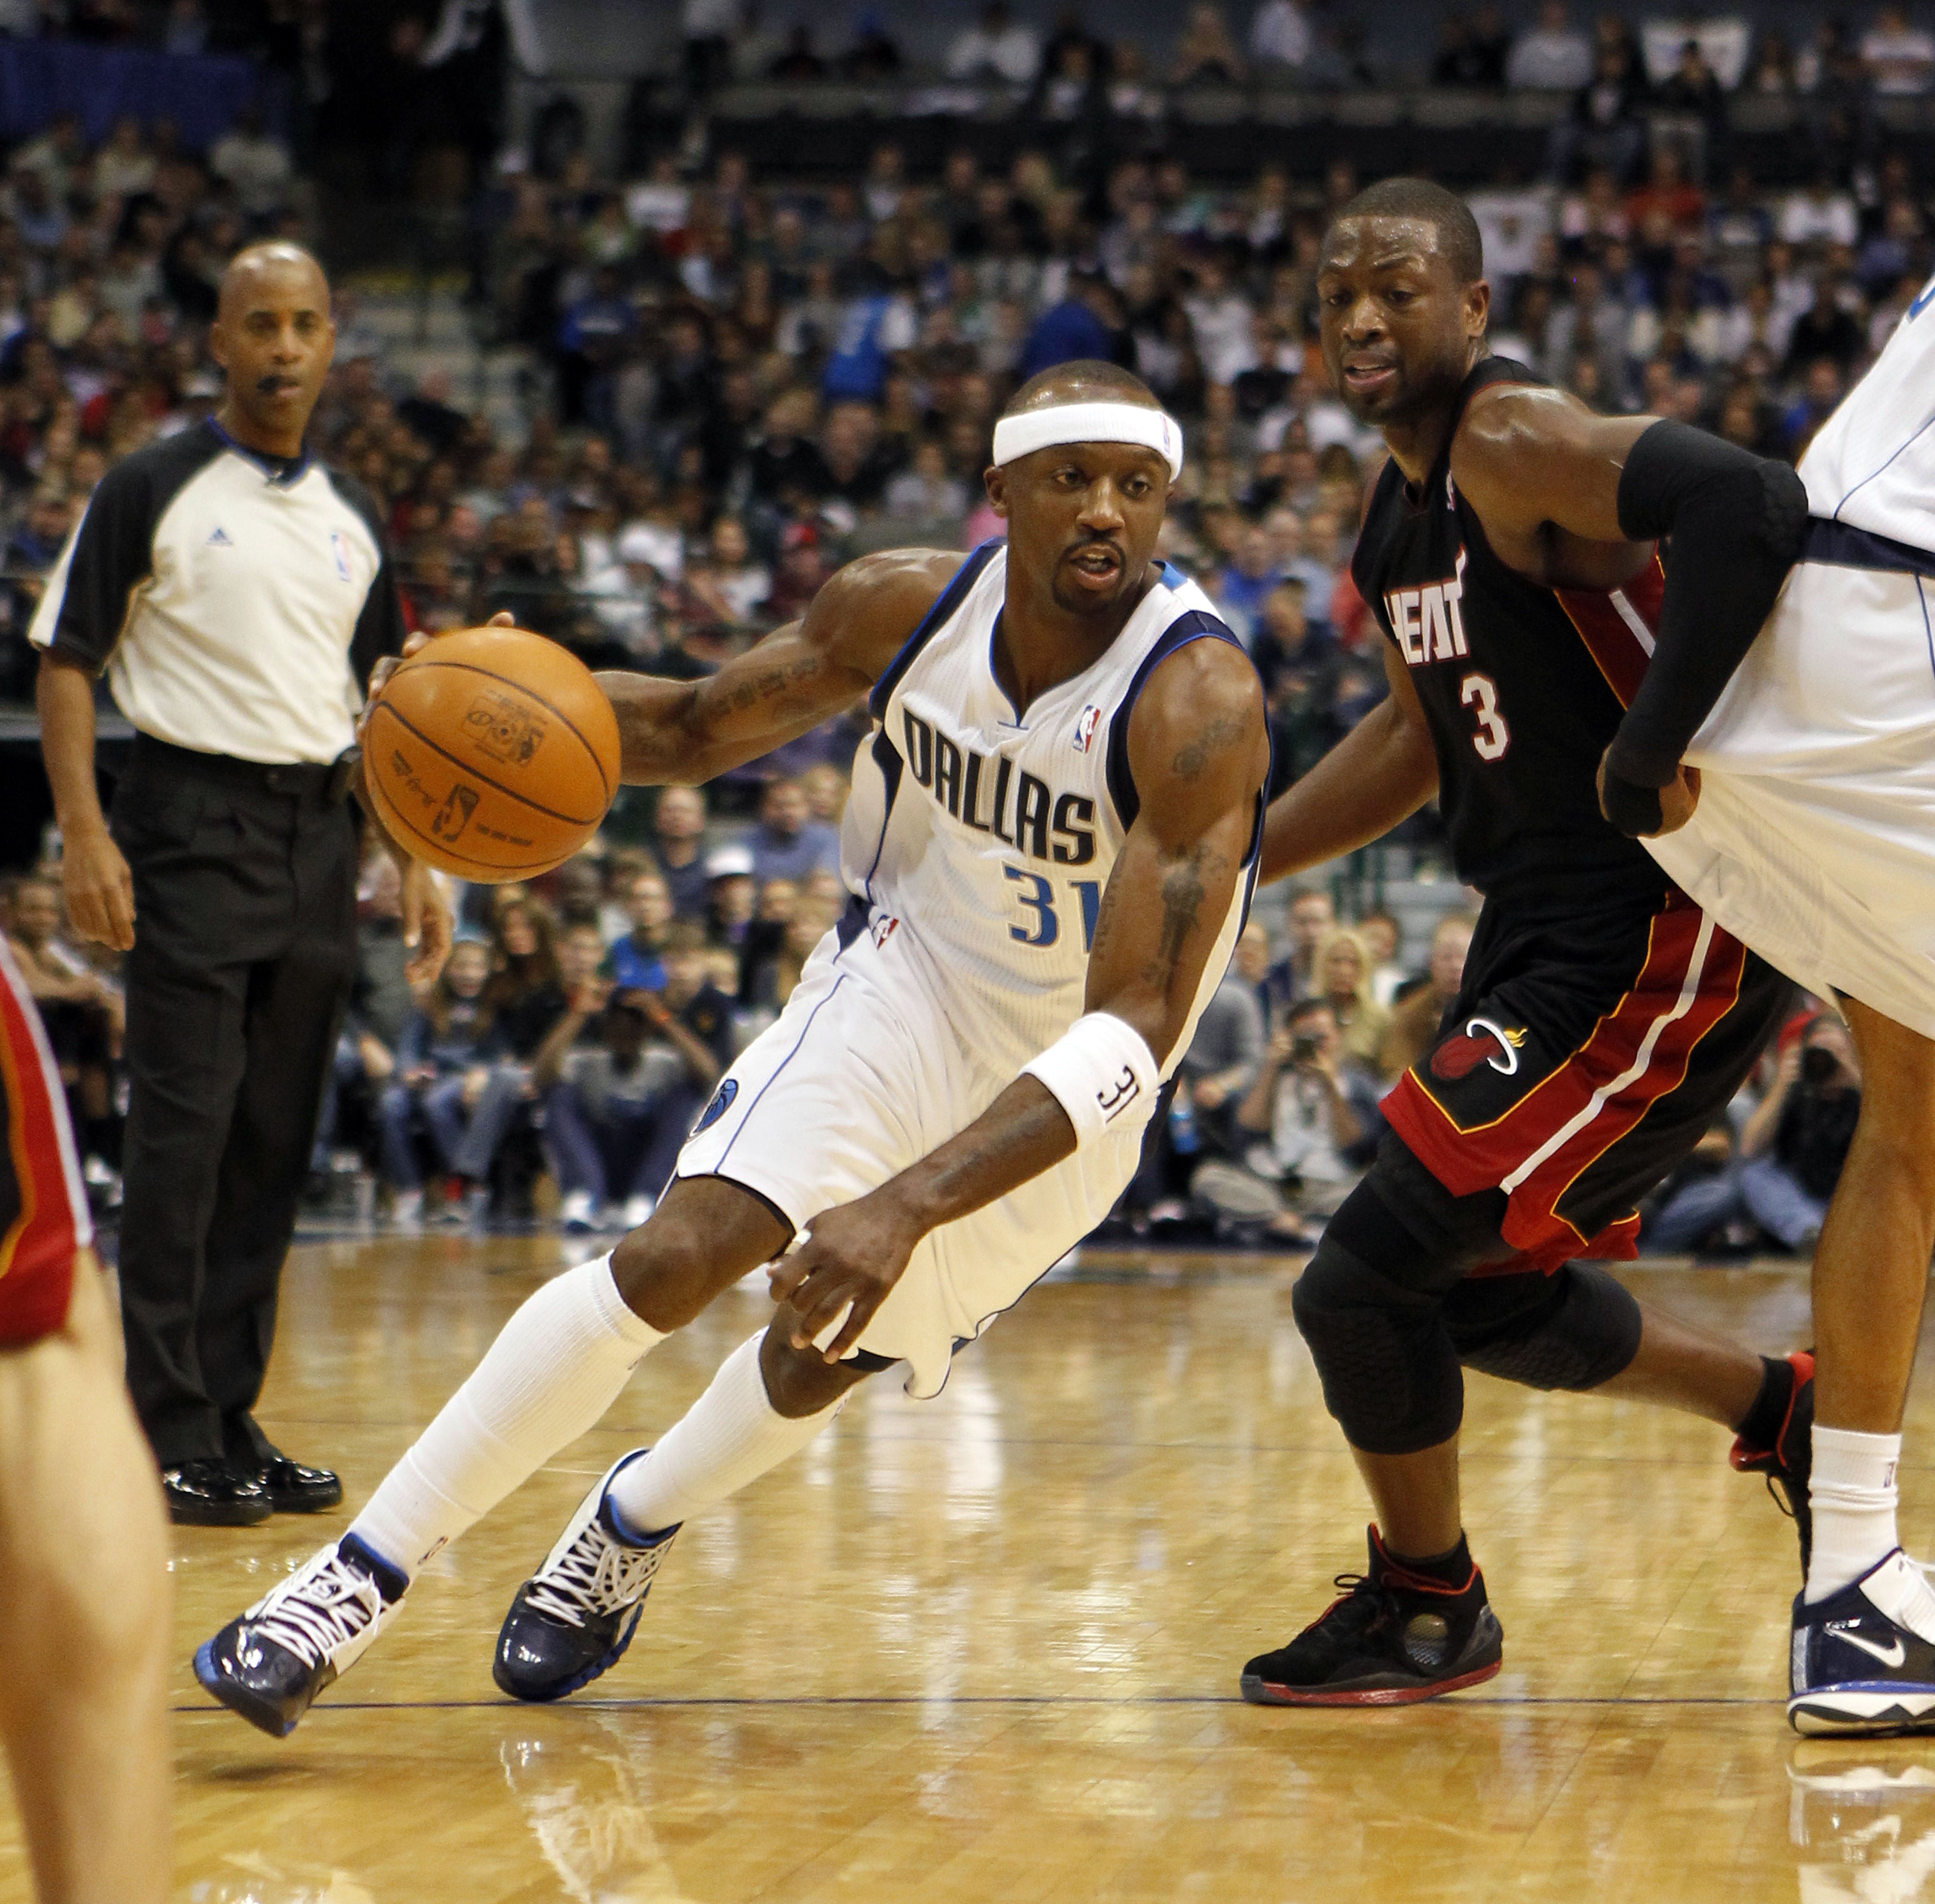 DALLAS - NOVEMBER 27: Jason Terry #31 of the Dallas Mavericks drives by Dwyane Wade #3 of the Miami Heat on November 27, 2010 at the American Airlines Center in Dallas, Texas. NOTE TO USER: User expressly acknowledges and agrees that, by downloading and o